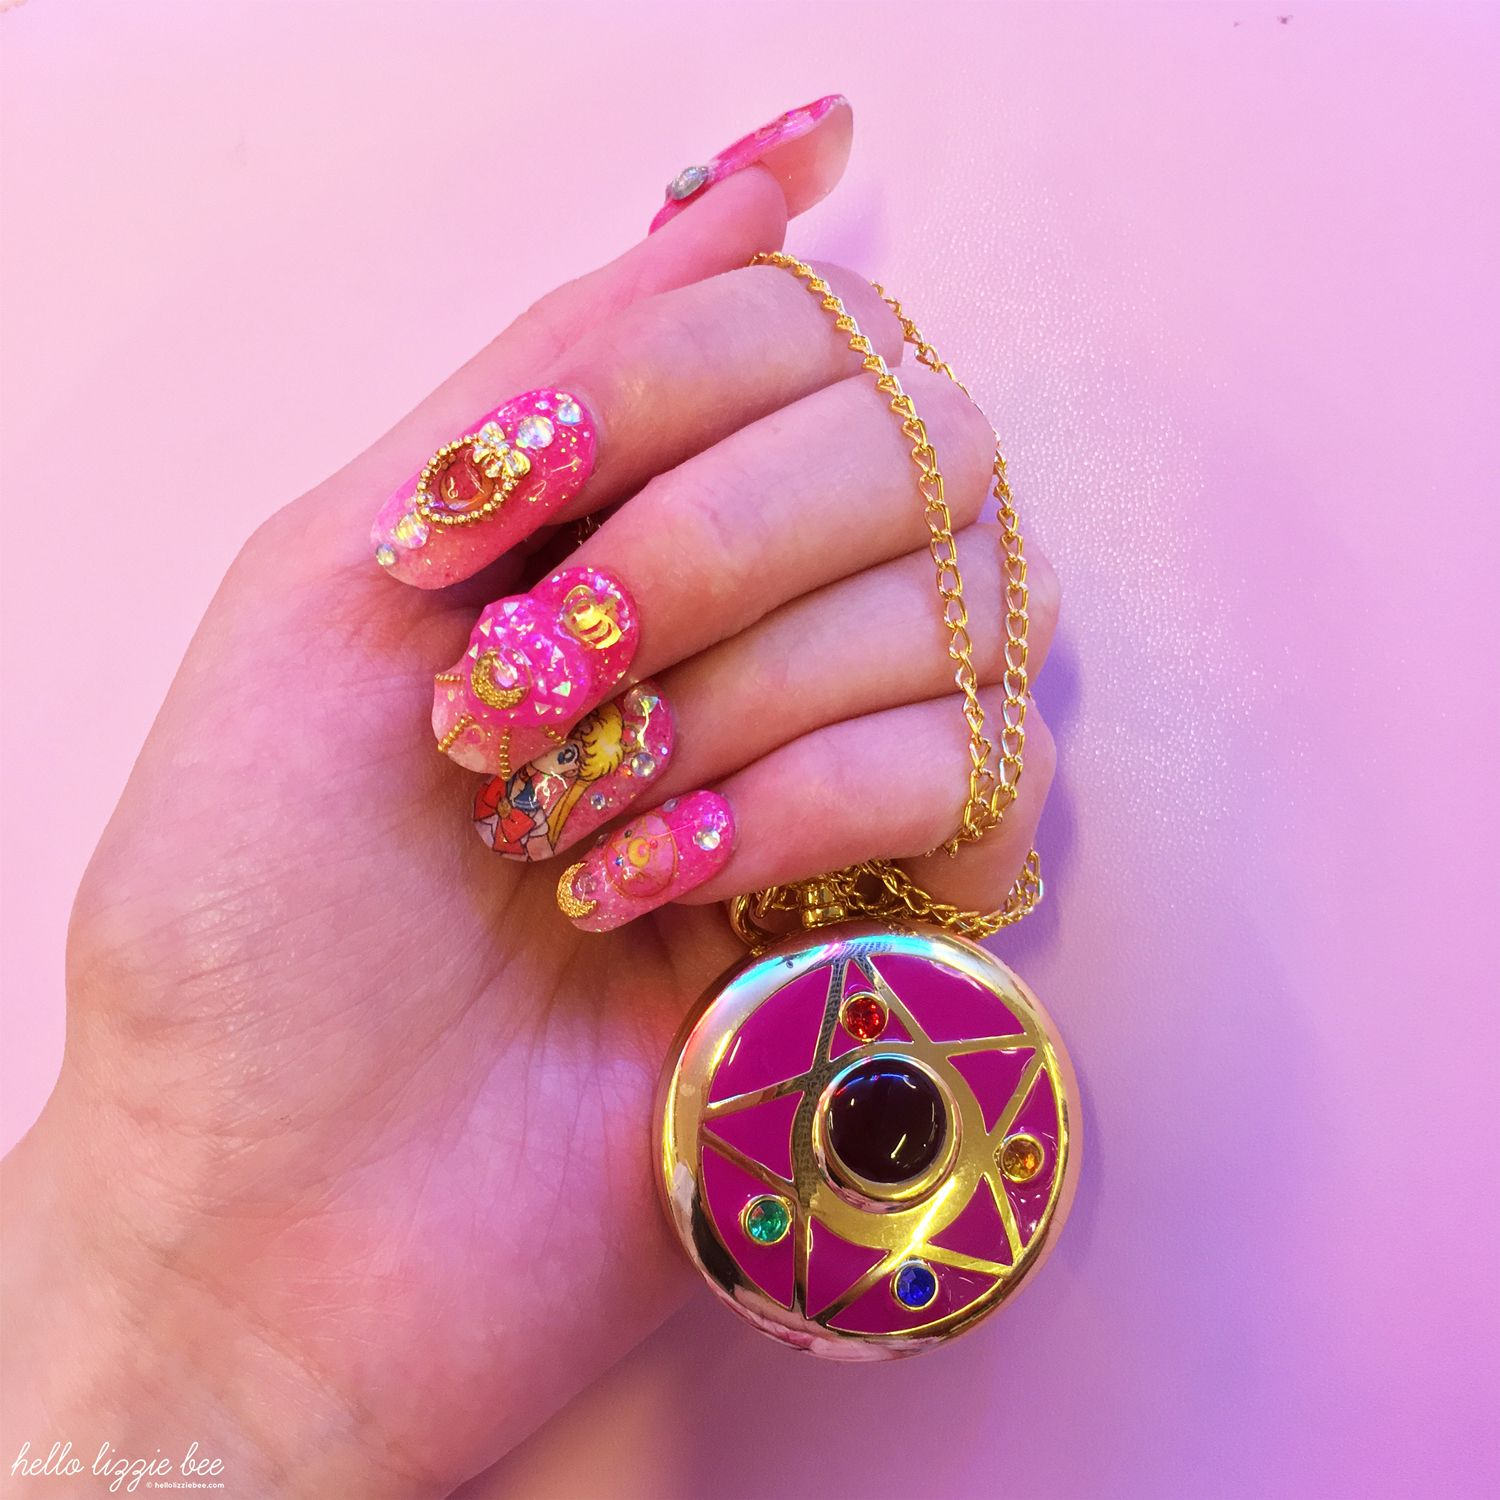 sailor moon gyaru nails